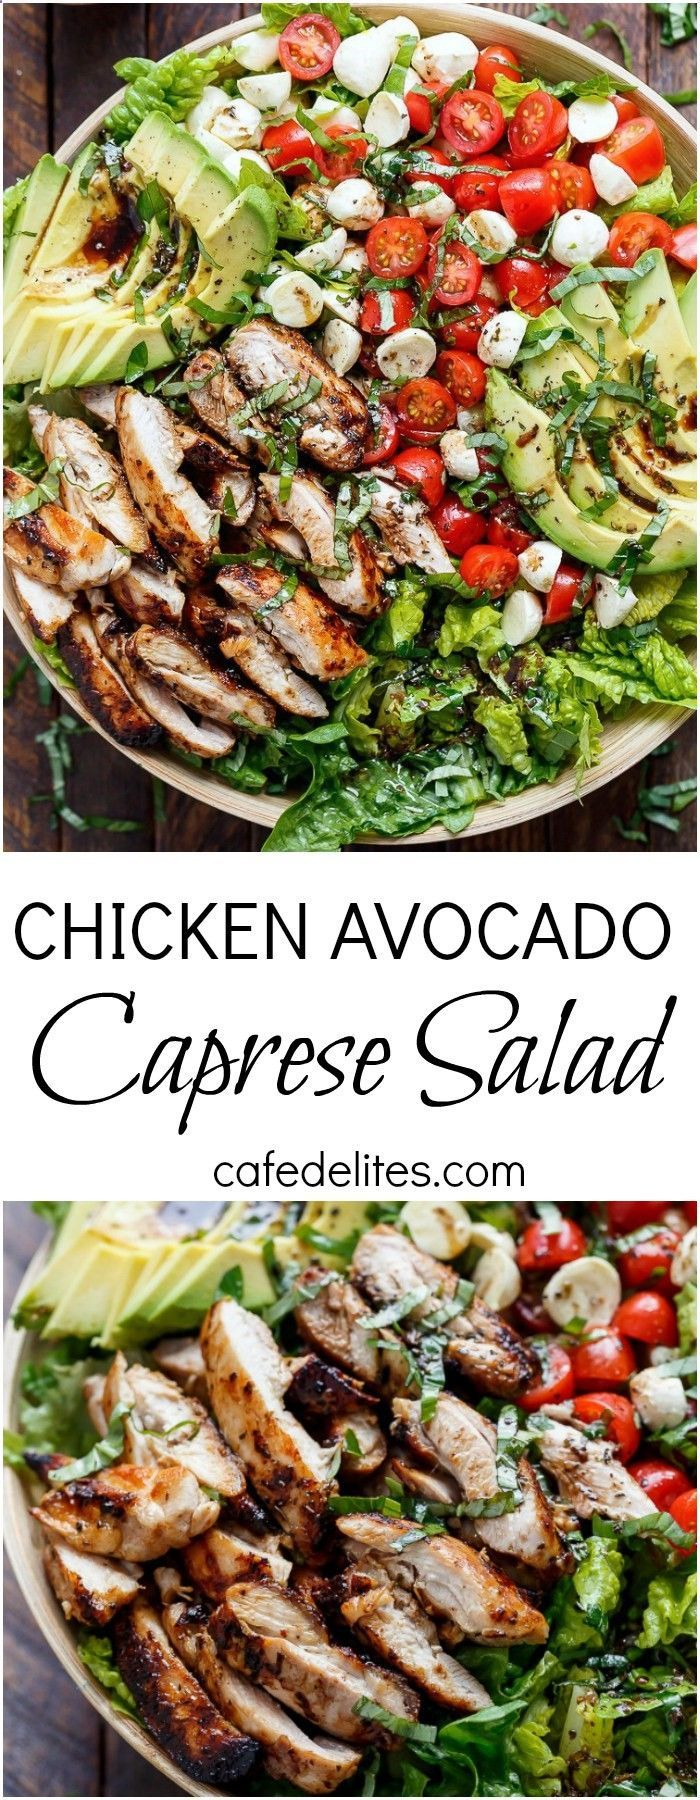 This salad is a quick and easy meal in a salad drizzled with a balsamic dressing that doubles as a marinade!  #salads #saladrecipes #healthysalads #healthyrecipes #healthyliving #healthylifestyle